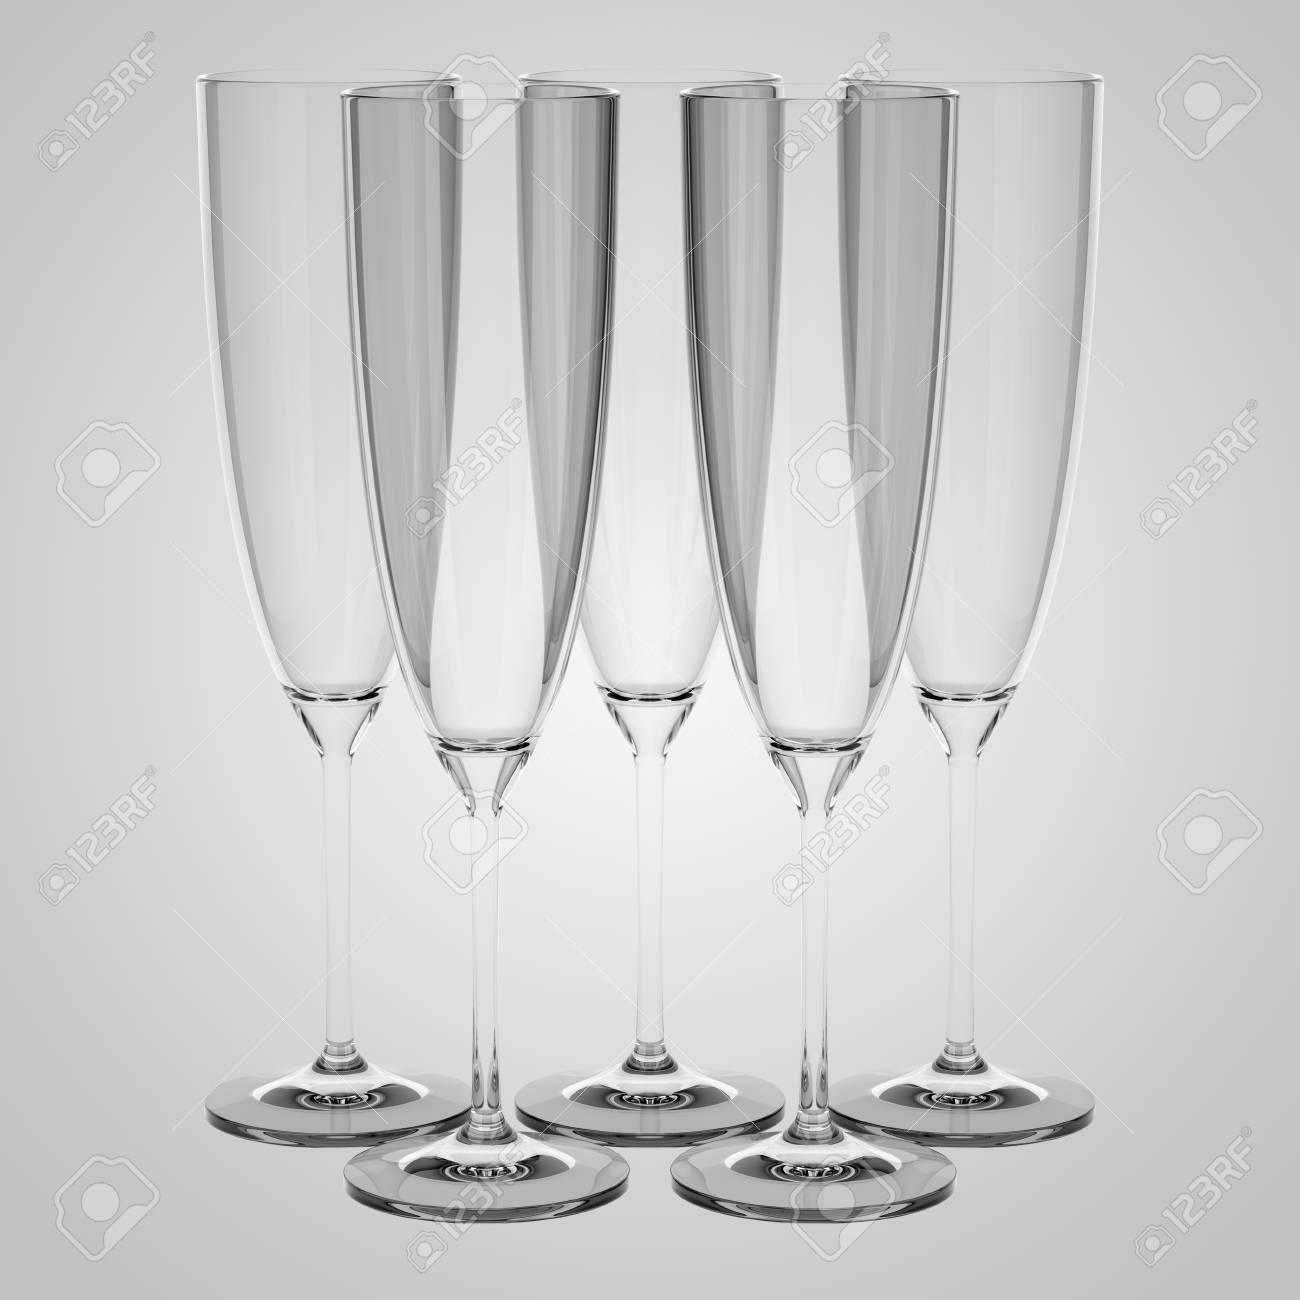 empty champagne glasses isolated on gray background Stock Photo - 23429914